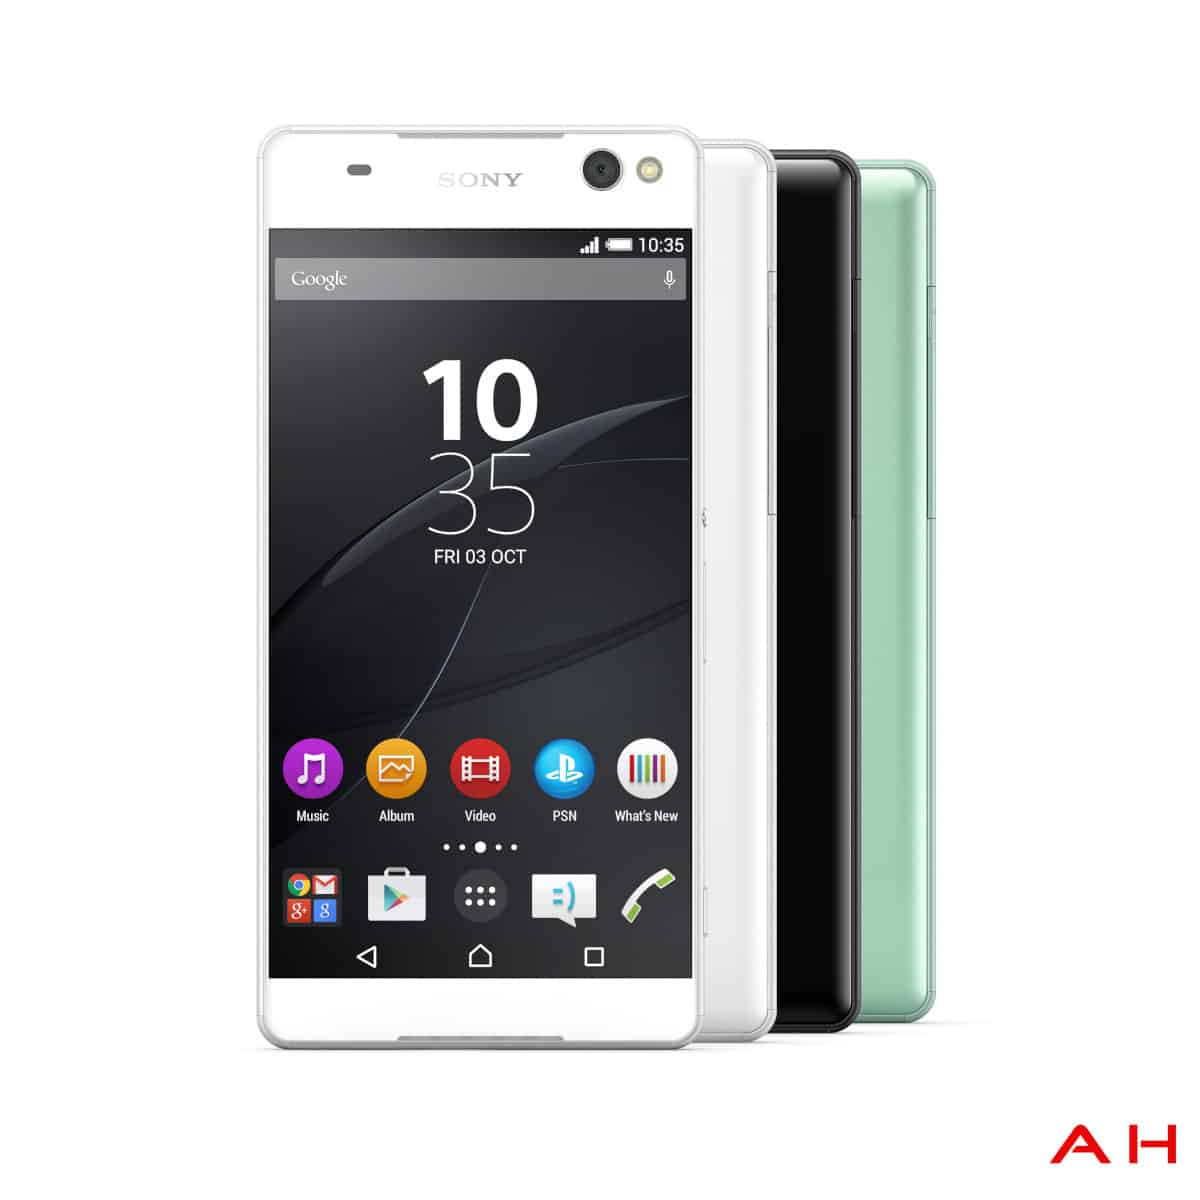 AH Sony Xperia C5 Ultra Press Images-4